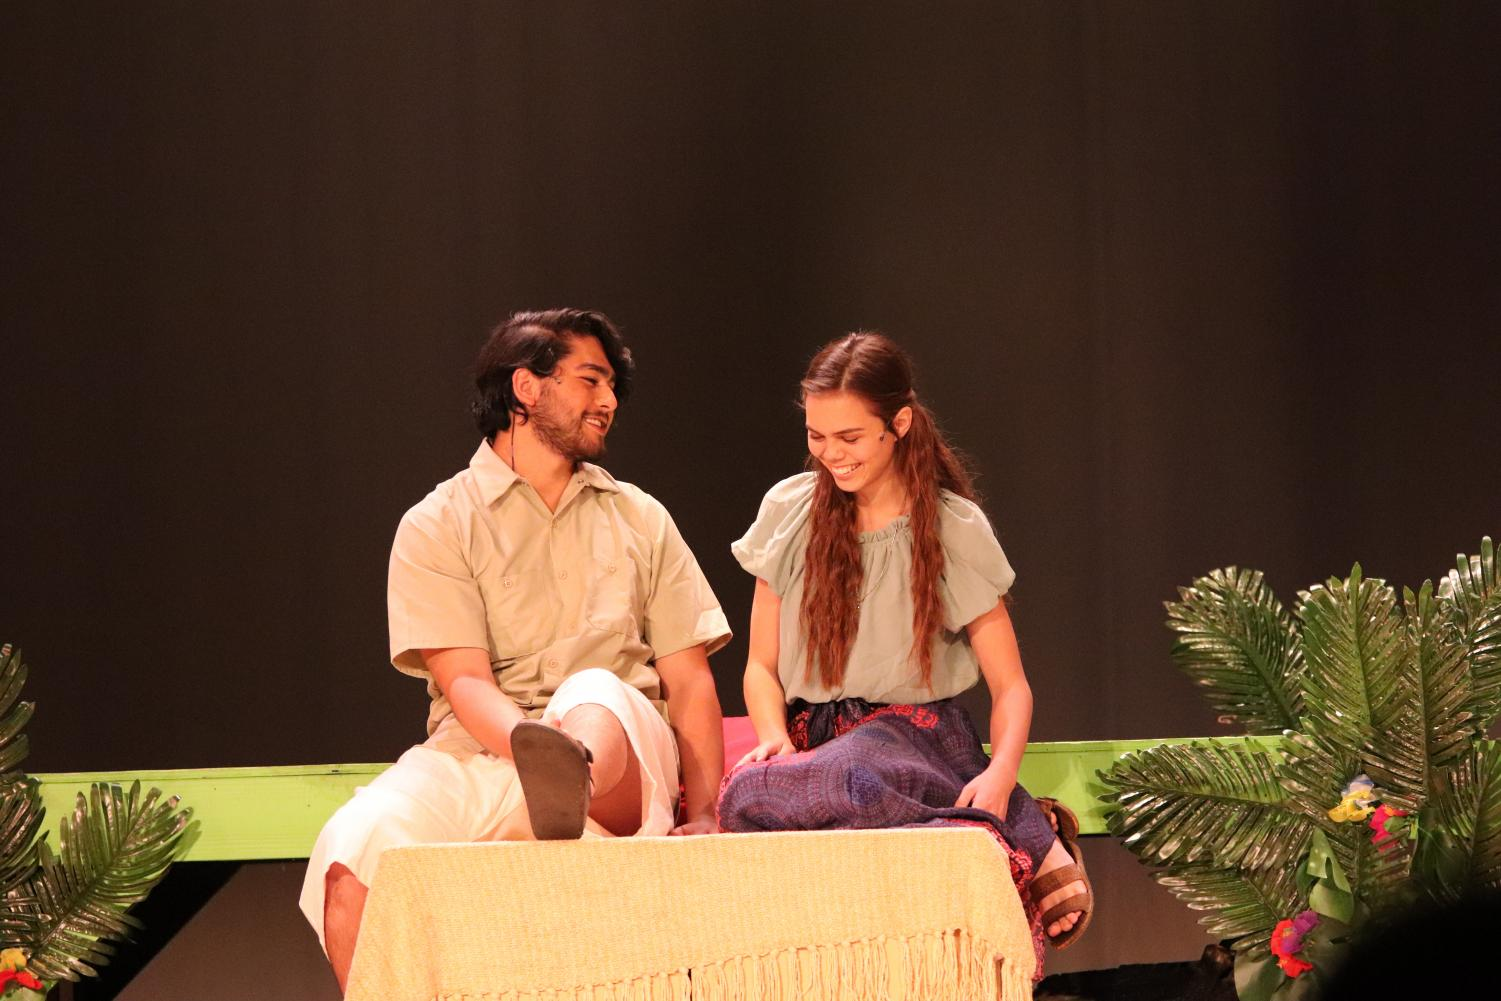 Daniel Beauxhomme (Eulysses Urrea) and Ti Moune (Kenya Orsburn) sitting and talking with each other.